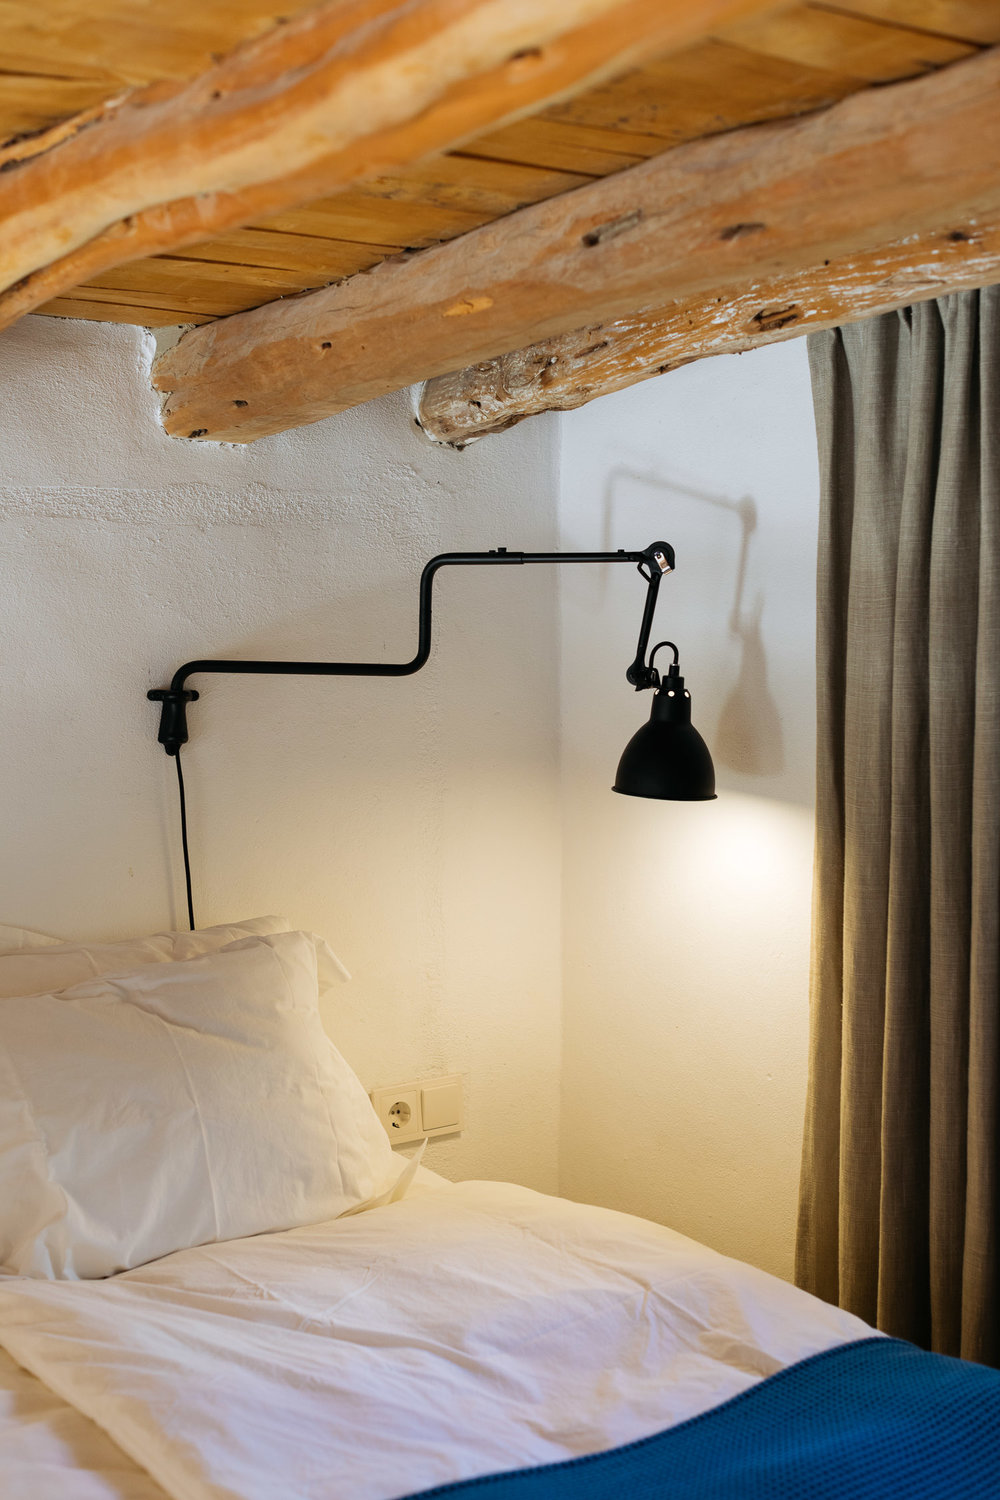 Ibiza_Campo_Loft_interior_architecture_photography_On_a_hazy_morning_Amsterdam262.jpg